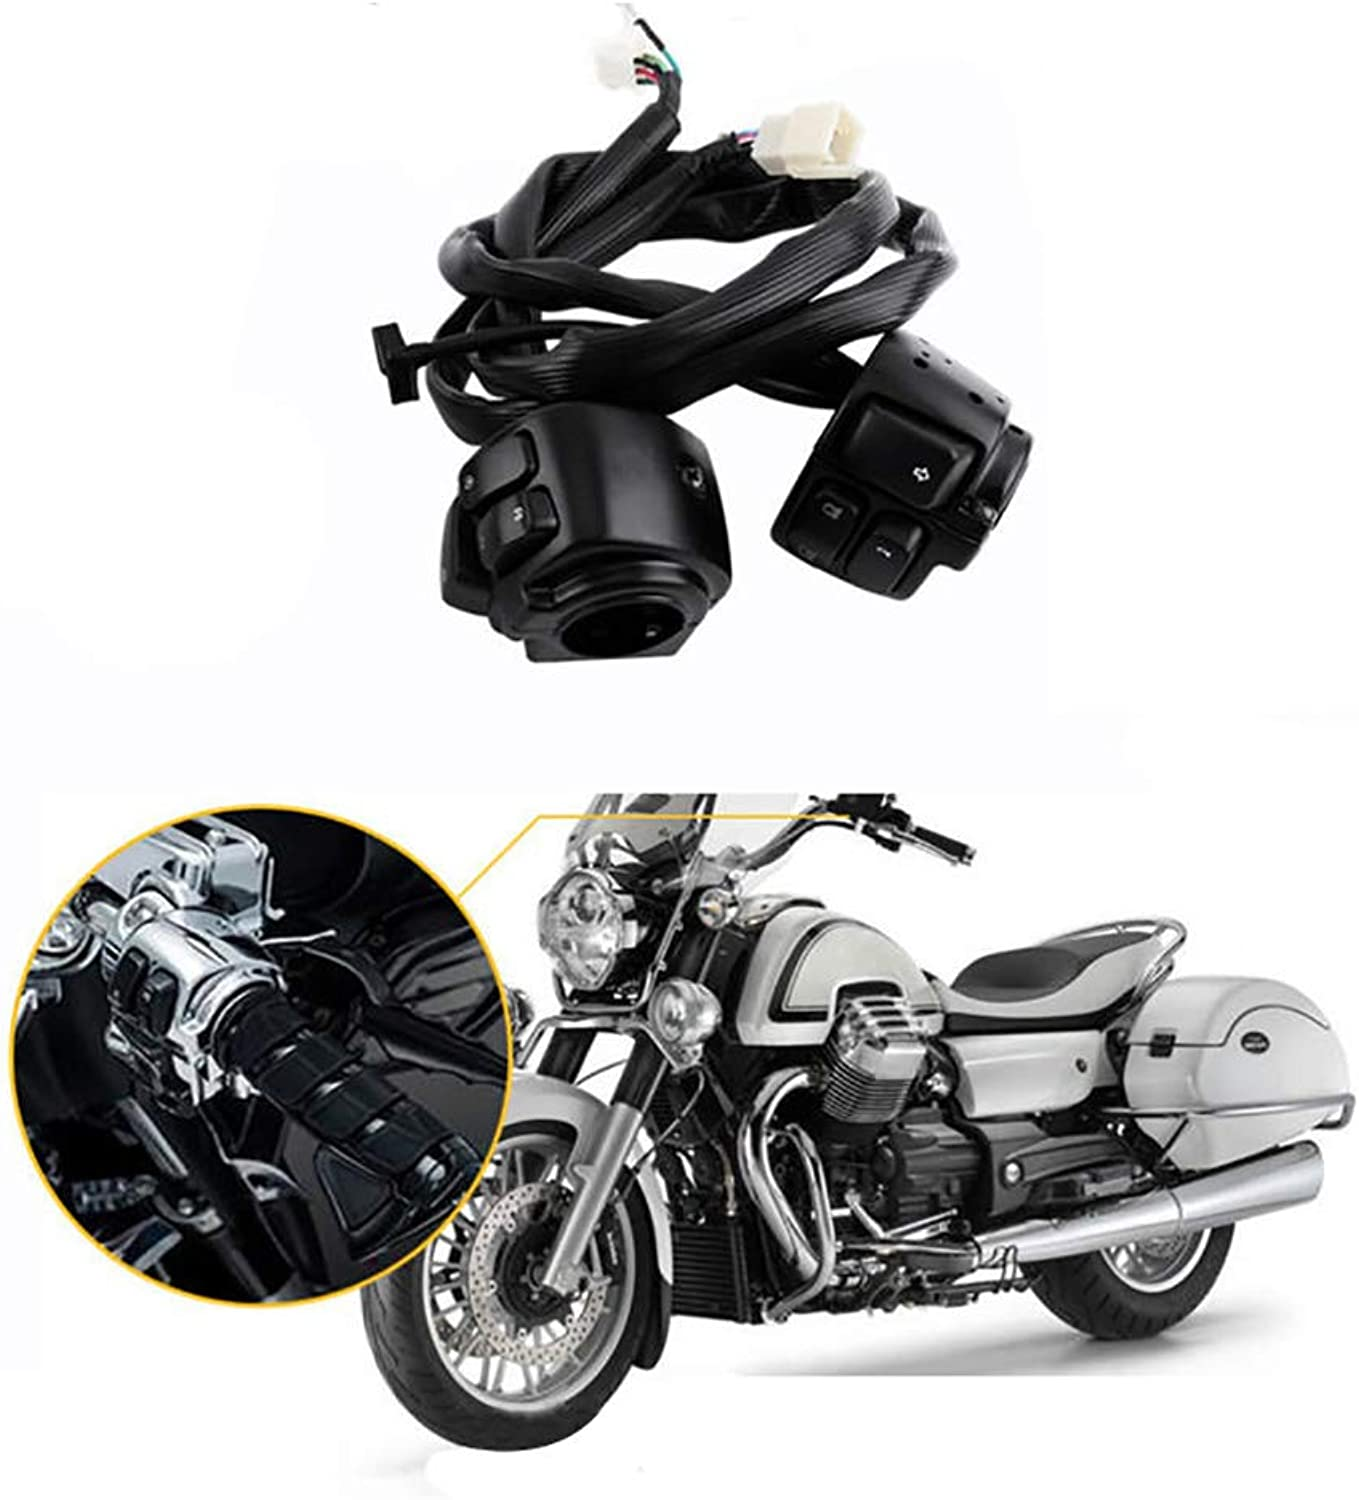 Simple 1  25mm Switch for Motorcycles For Harley redating Switches And Buttons With Wiring Harness Cruise Seat Switch Combination Switch Handlebar Switch Easy to instal ( color   Black )